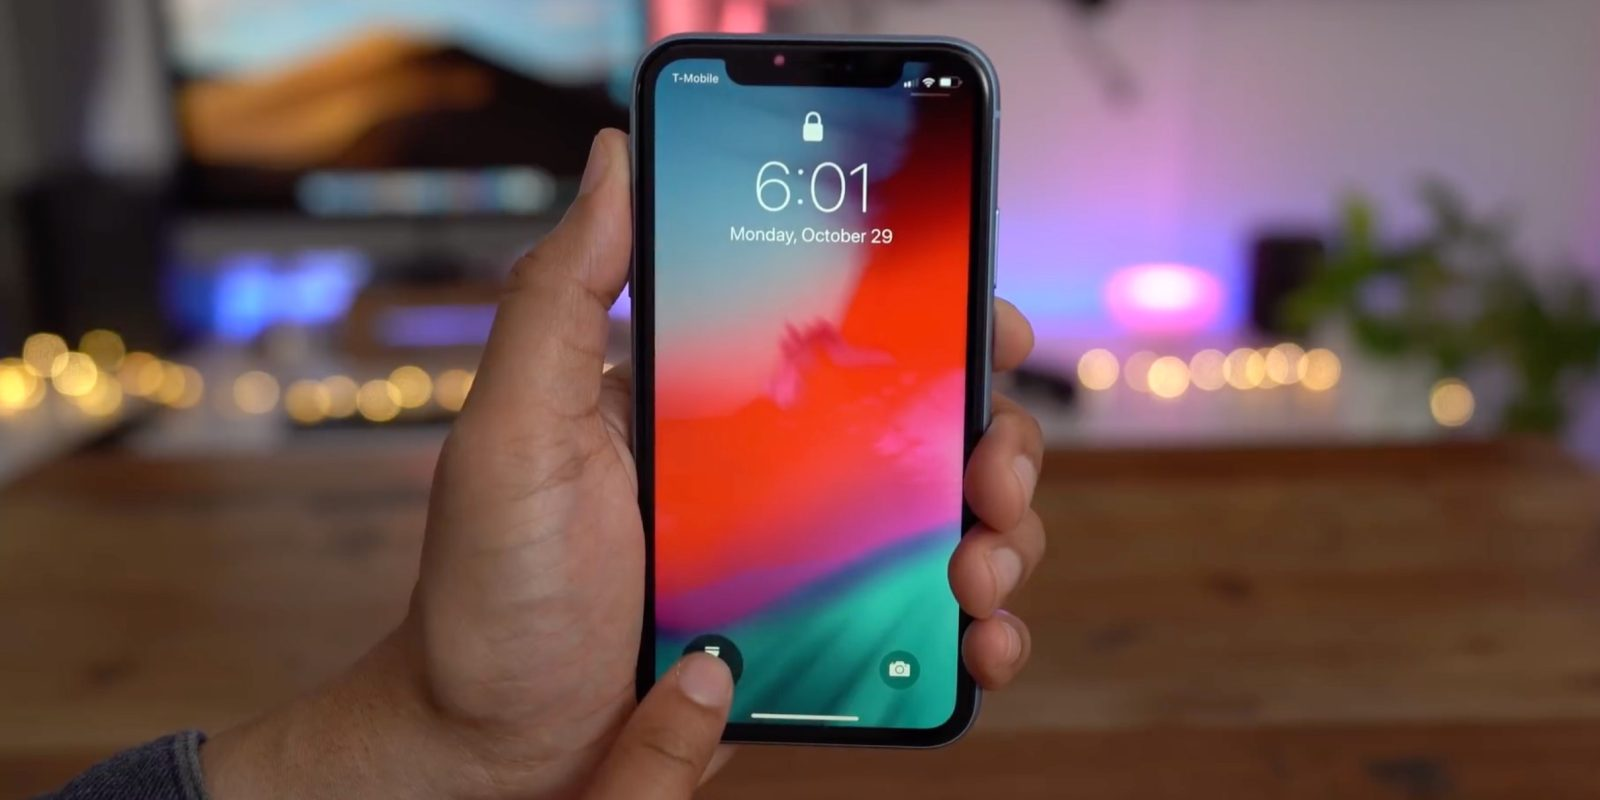 photo image iOS 12.1.2 adds settings menu to change Haptic Touch gesture duration